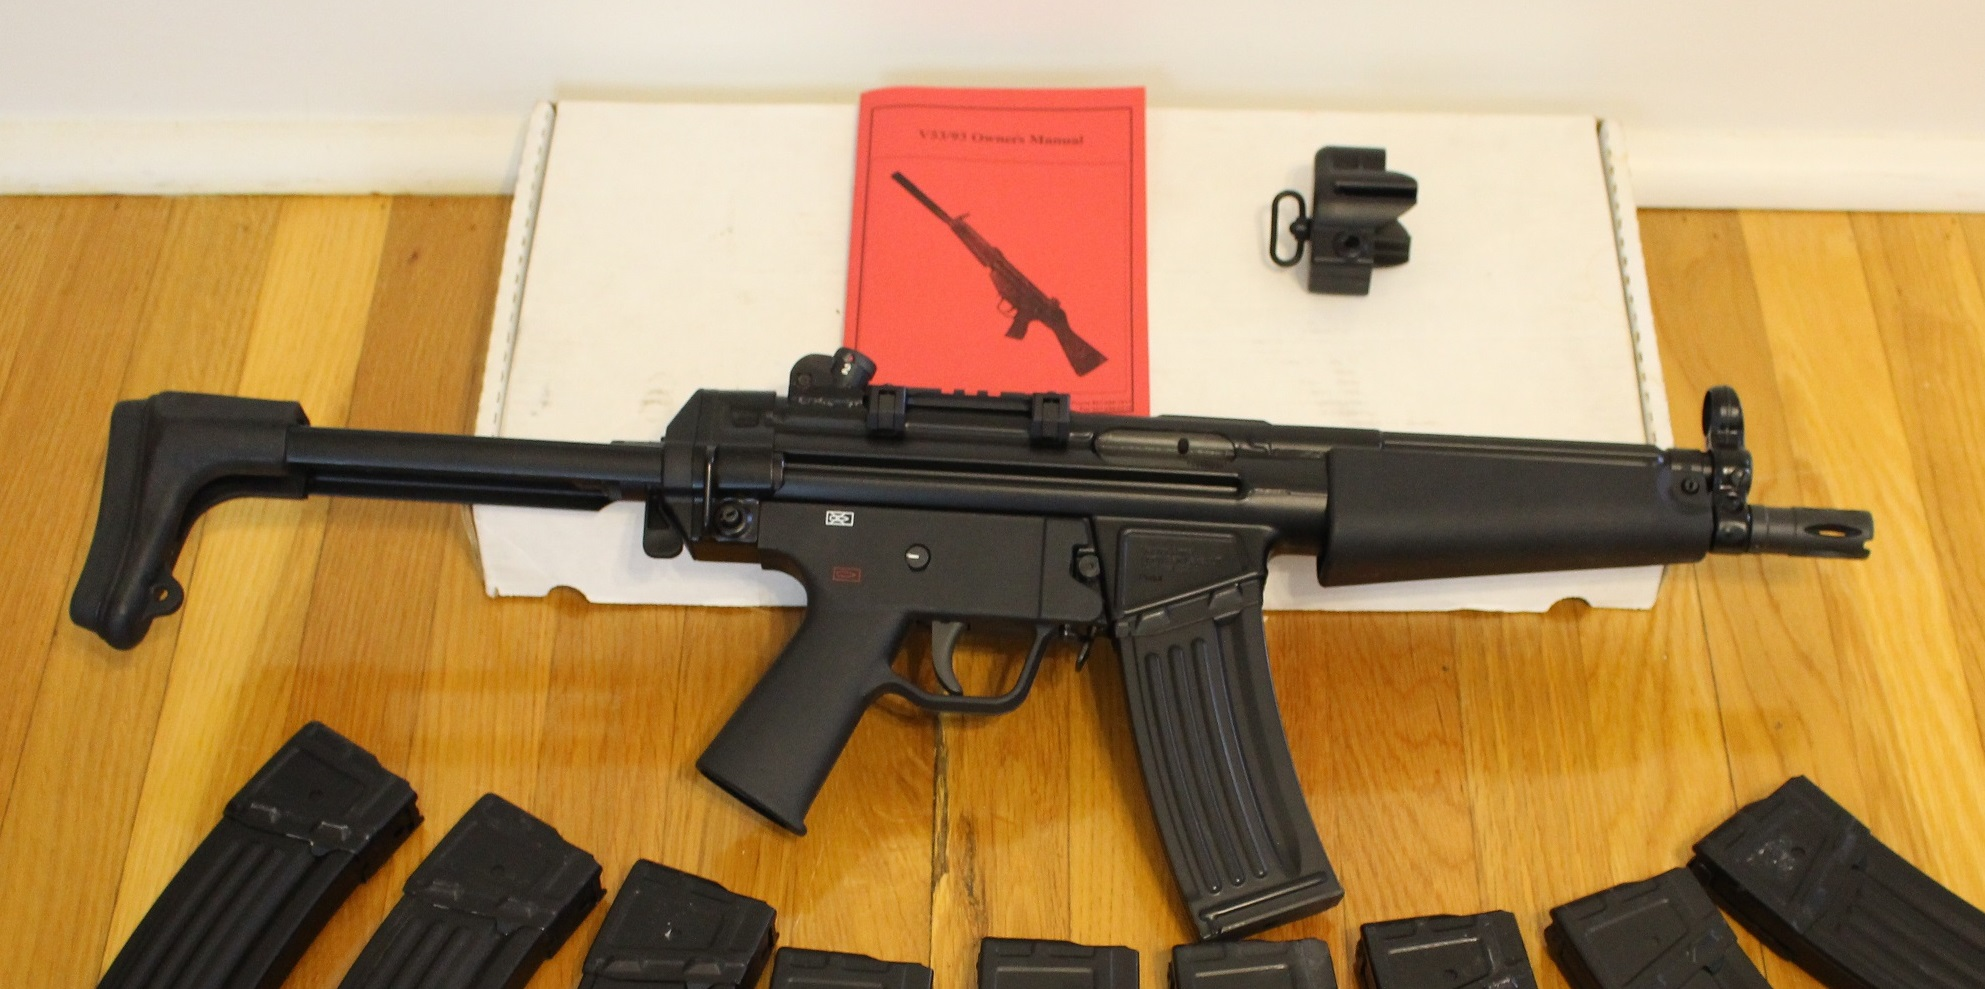 SOLD!: Vector 53 in SBR/pistol configuration - new, unfired, with accessories- alt=,500-img_1524-copy.jpg